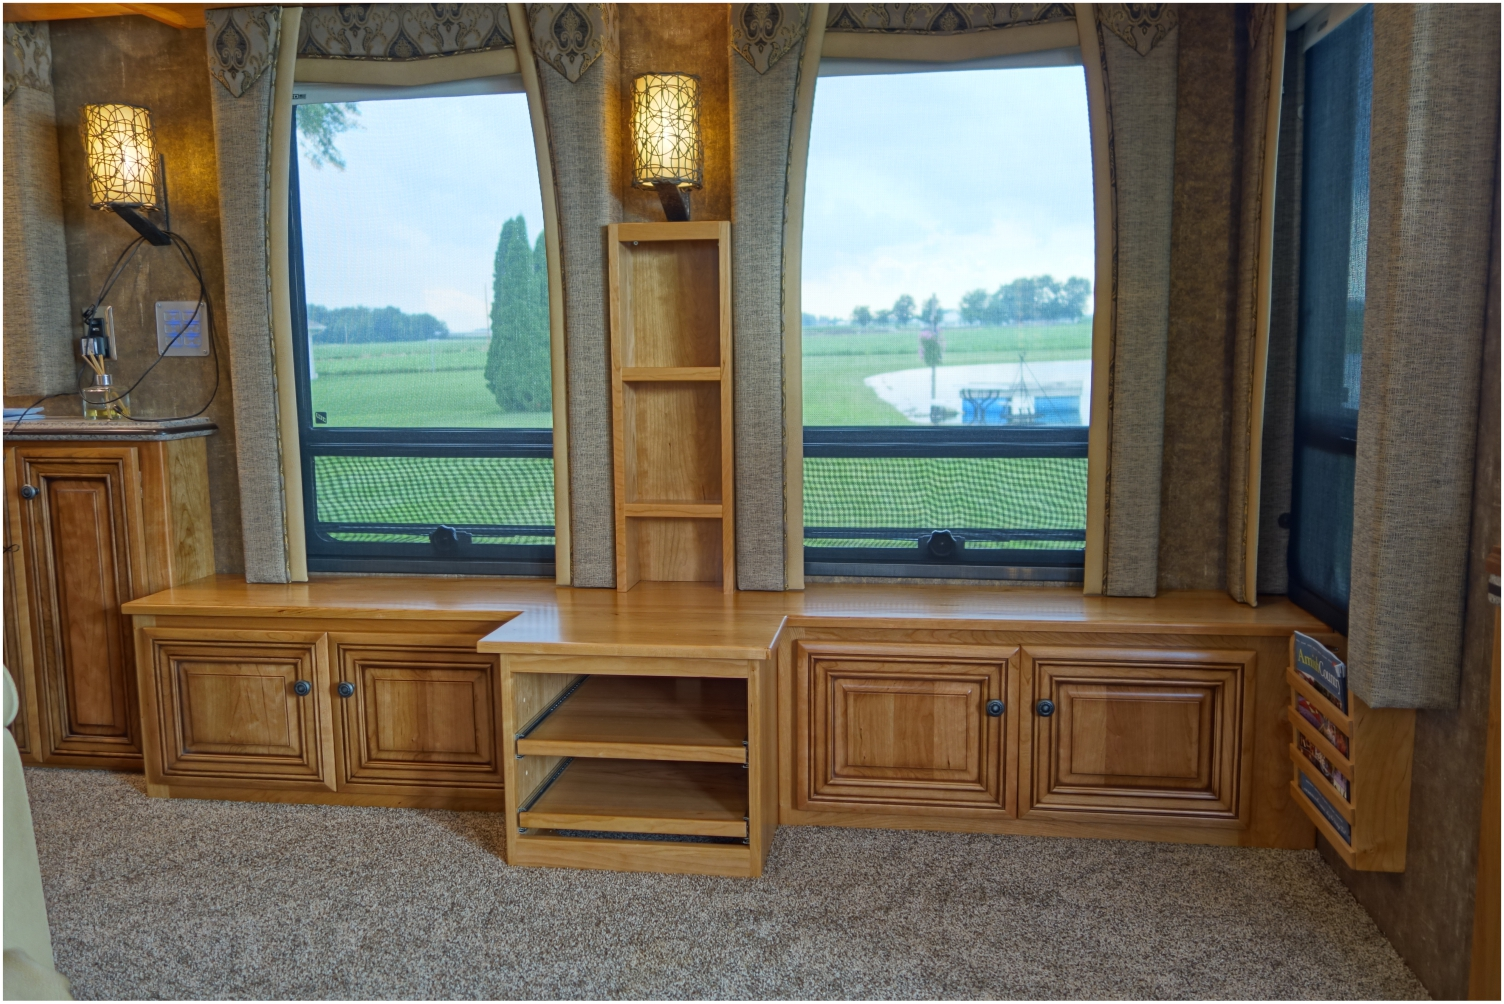 Custom cabinets built around windows